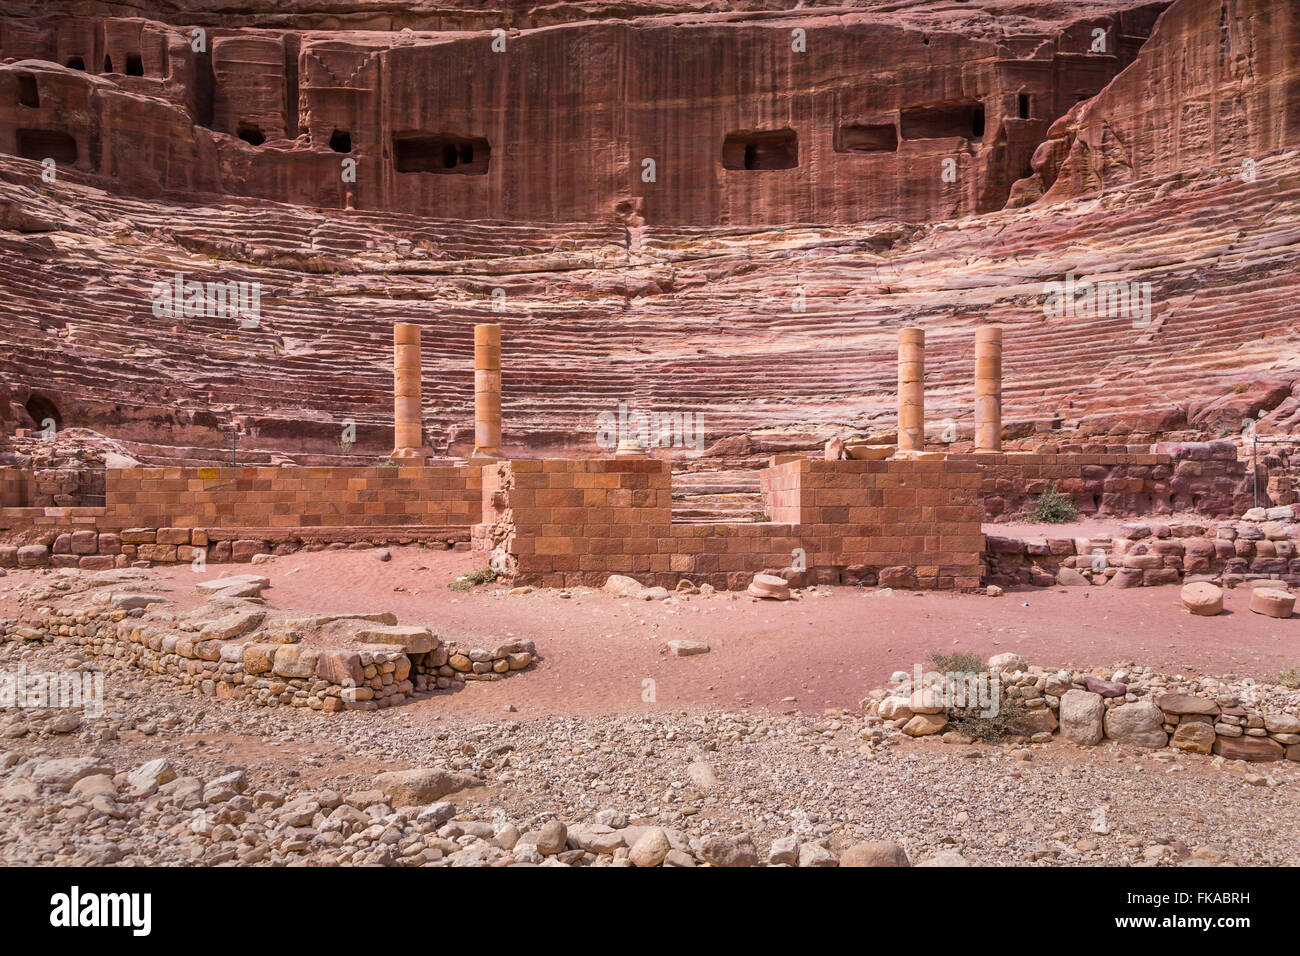 The Theater in the ruins of Petra, Hashemite Kingdom of Jordan. - Stock Image